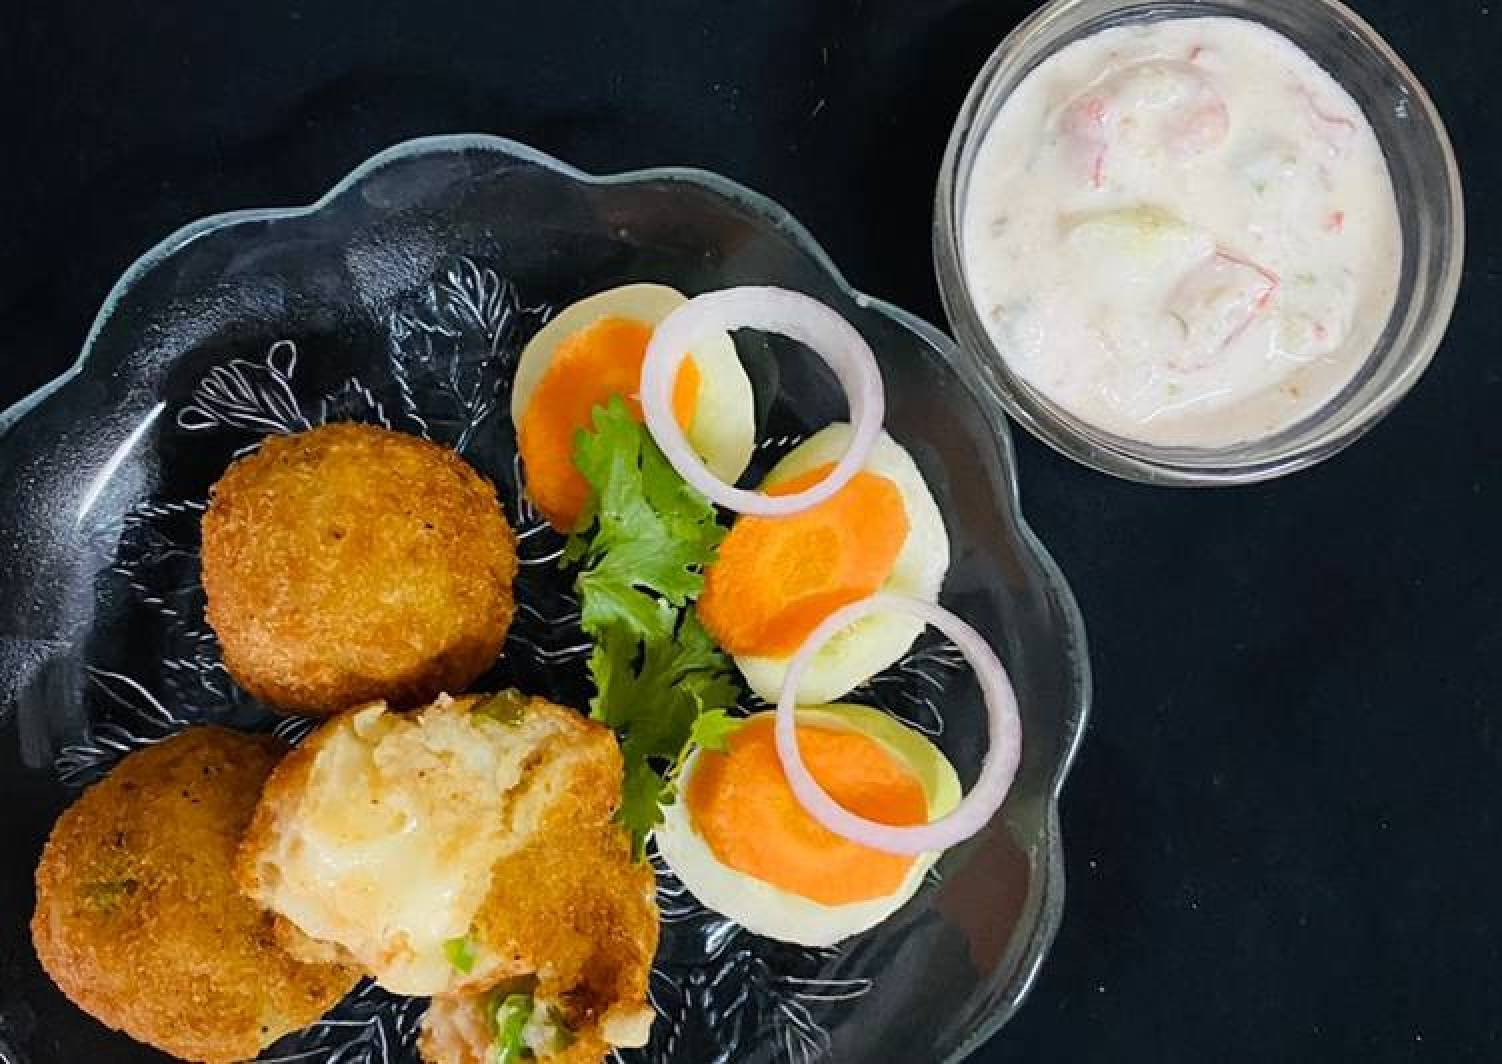 Potato Cheese Balls With curd dip